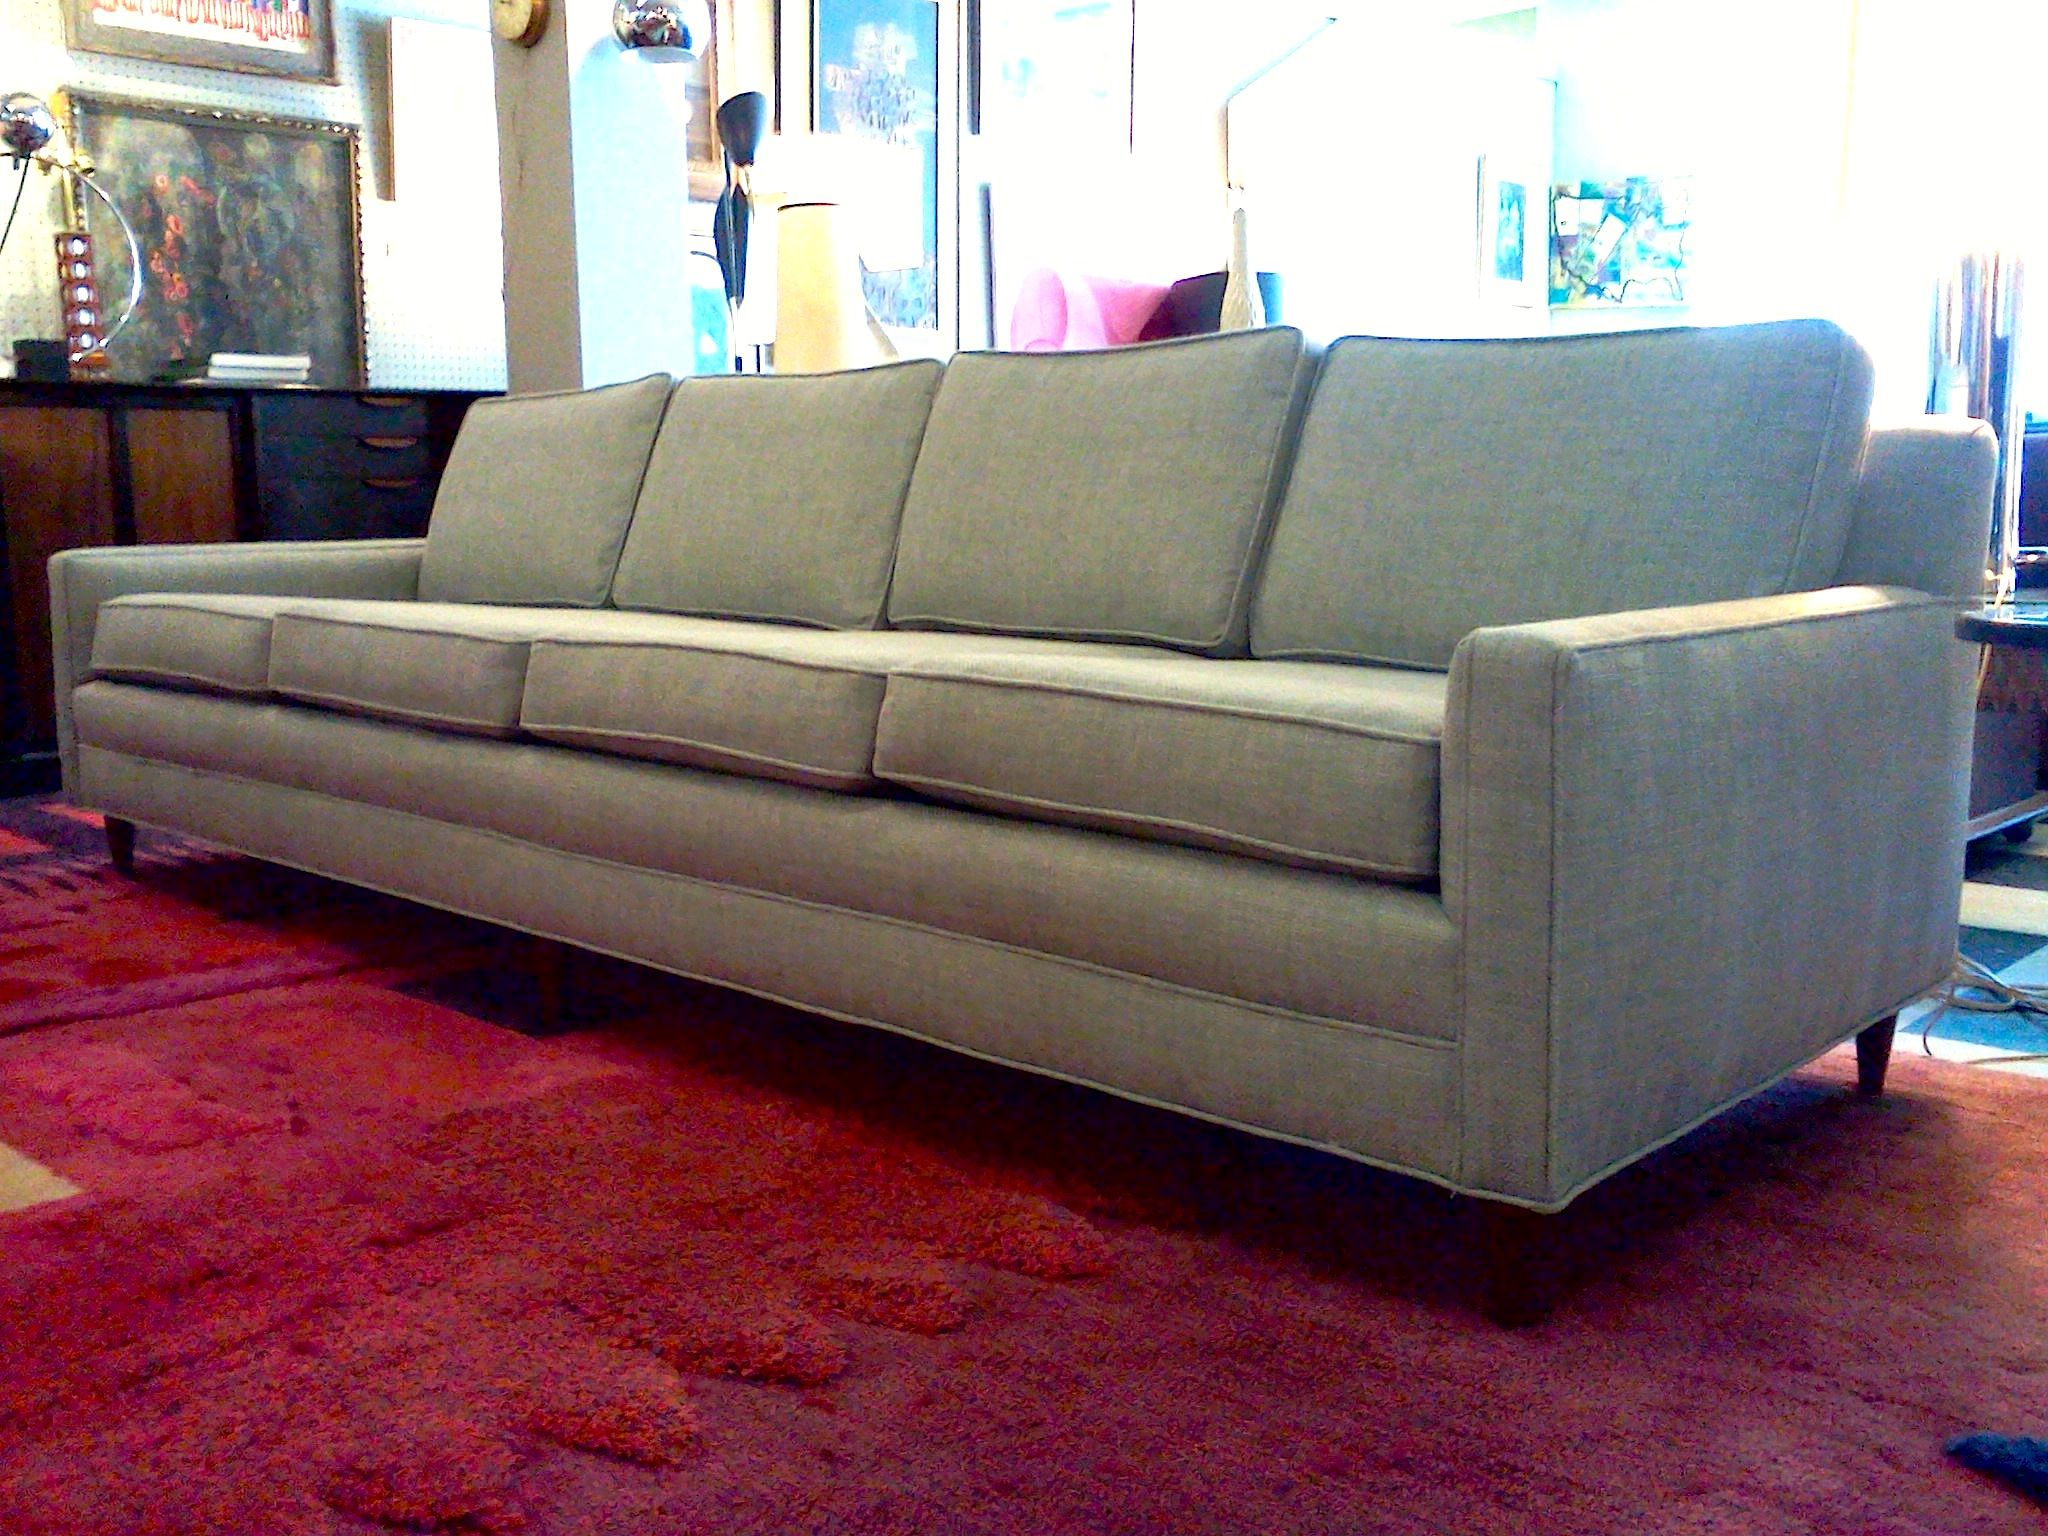 Sofa Repair Dubai Service Is Cost Saving Because You Need Not B